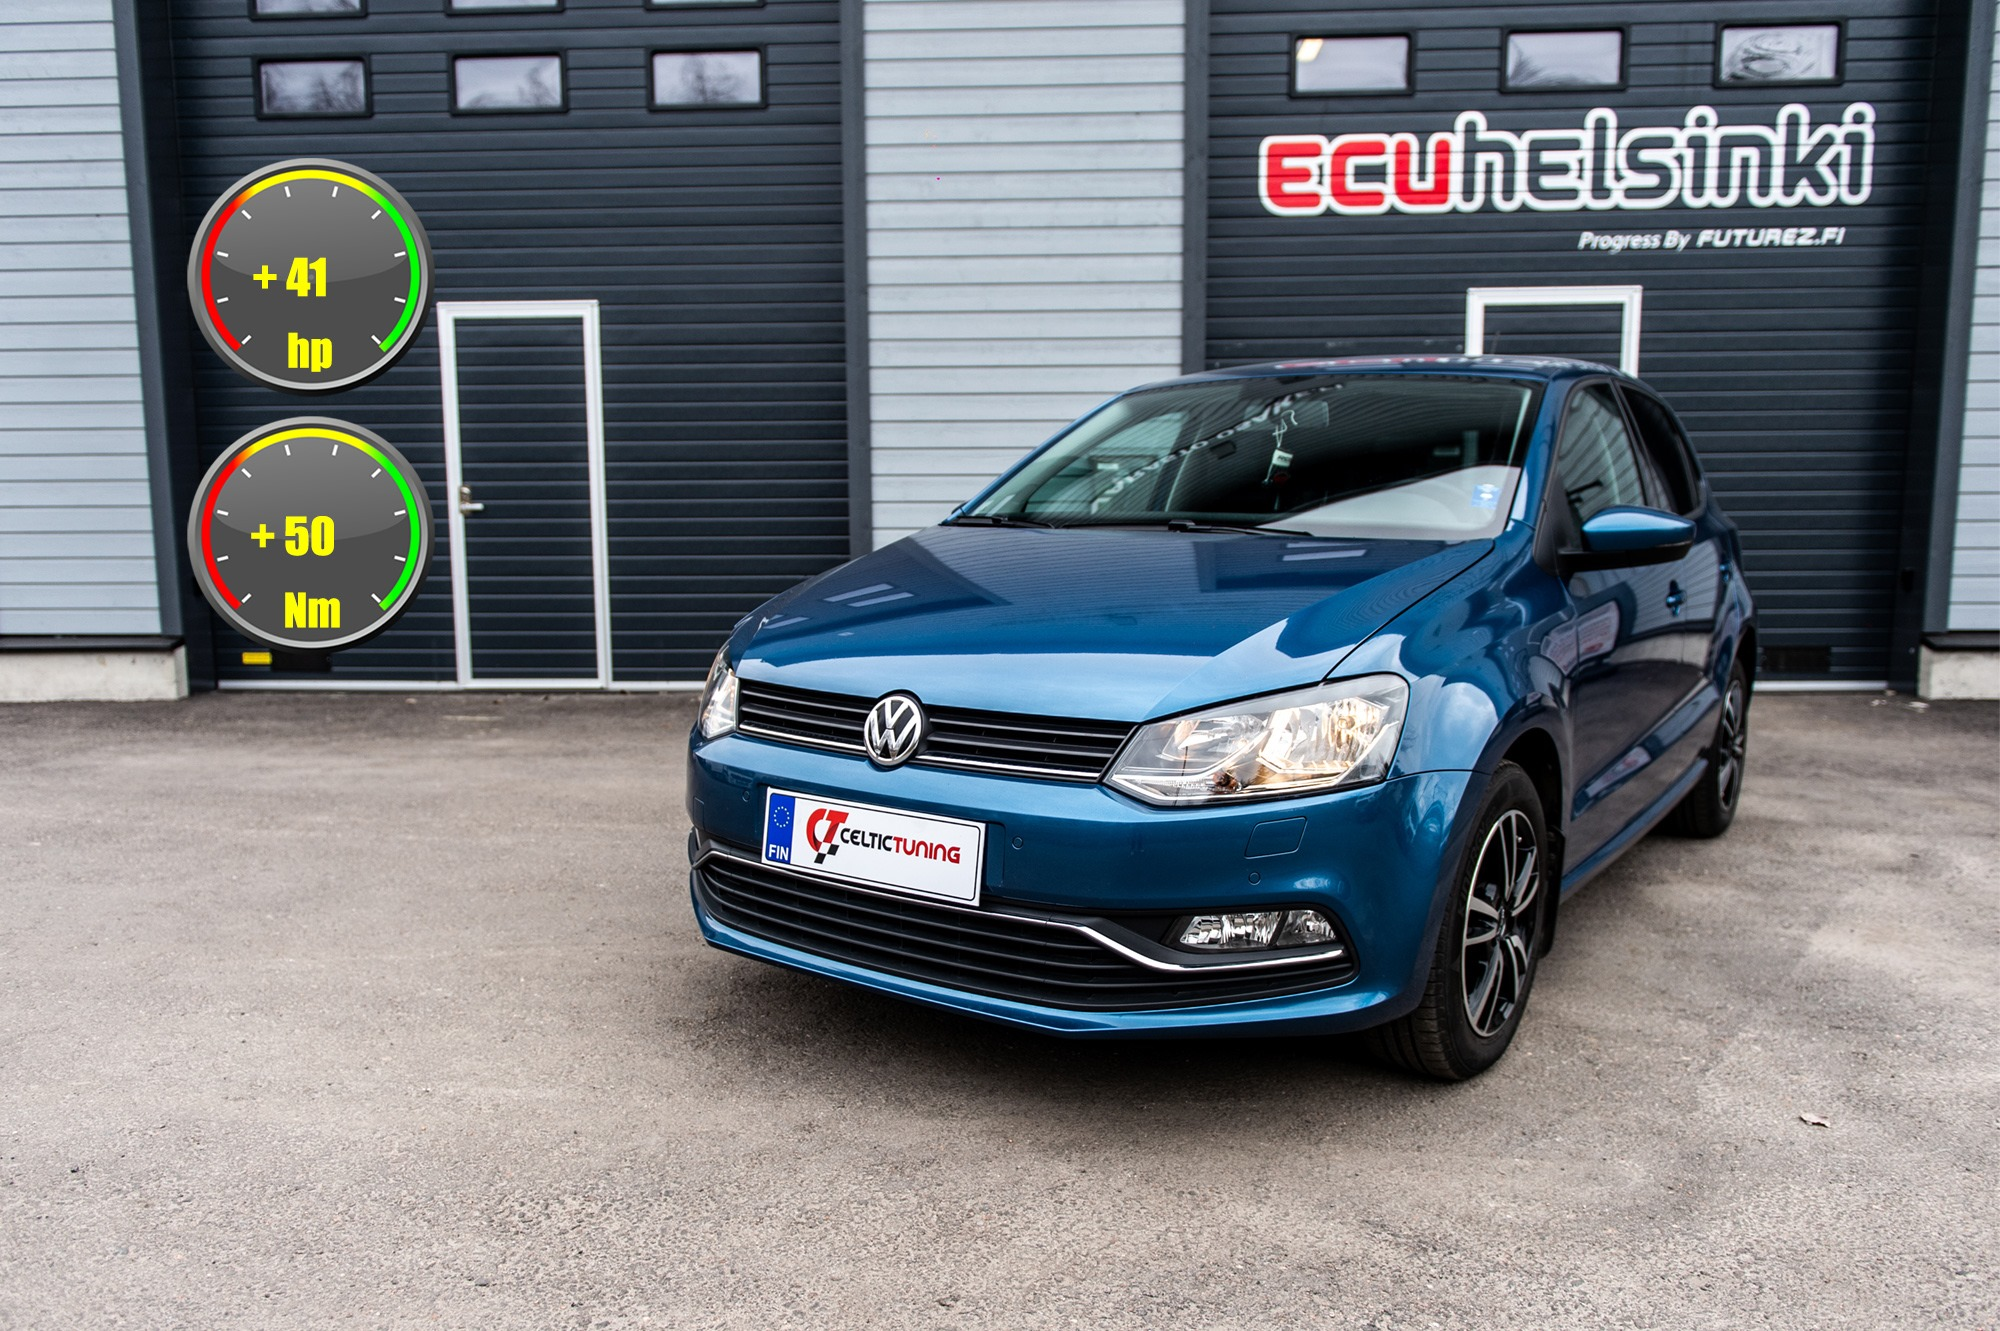 VW Polo 1.2 TSI celtic tuning lastut